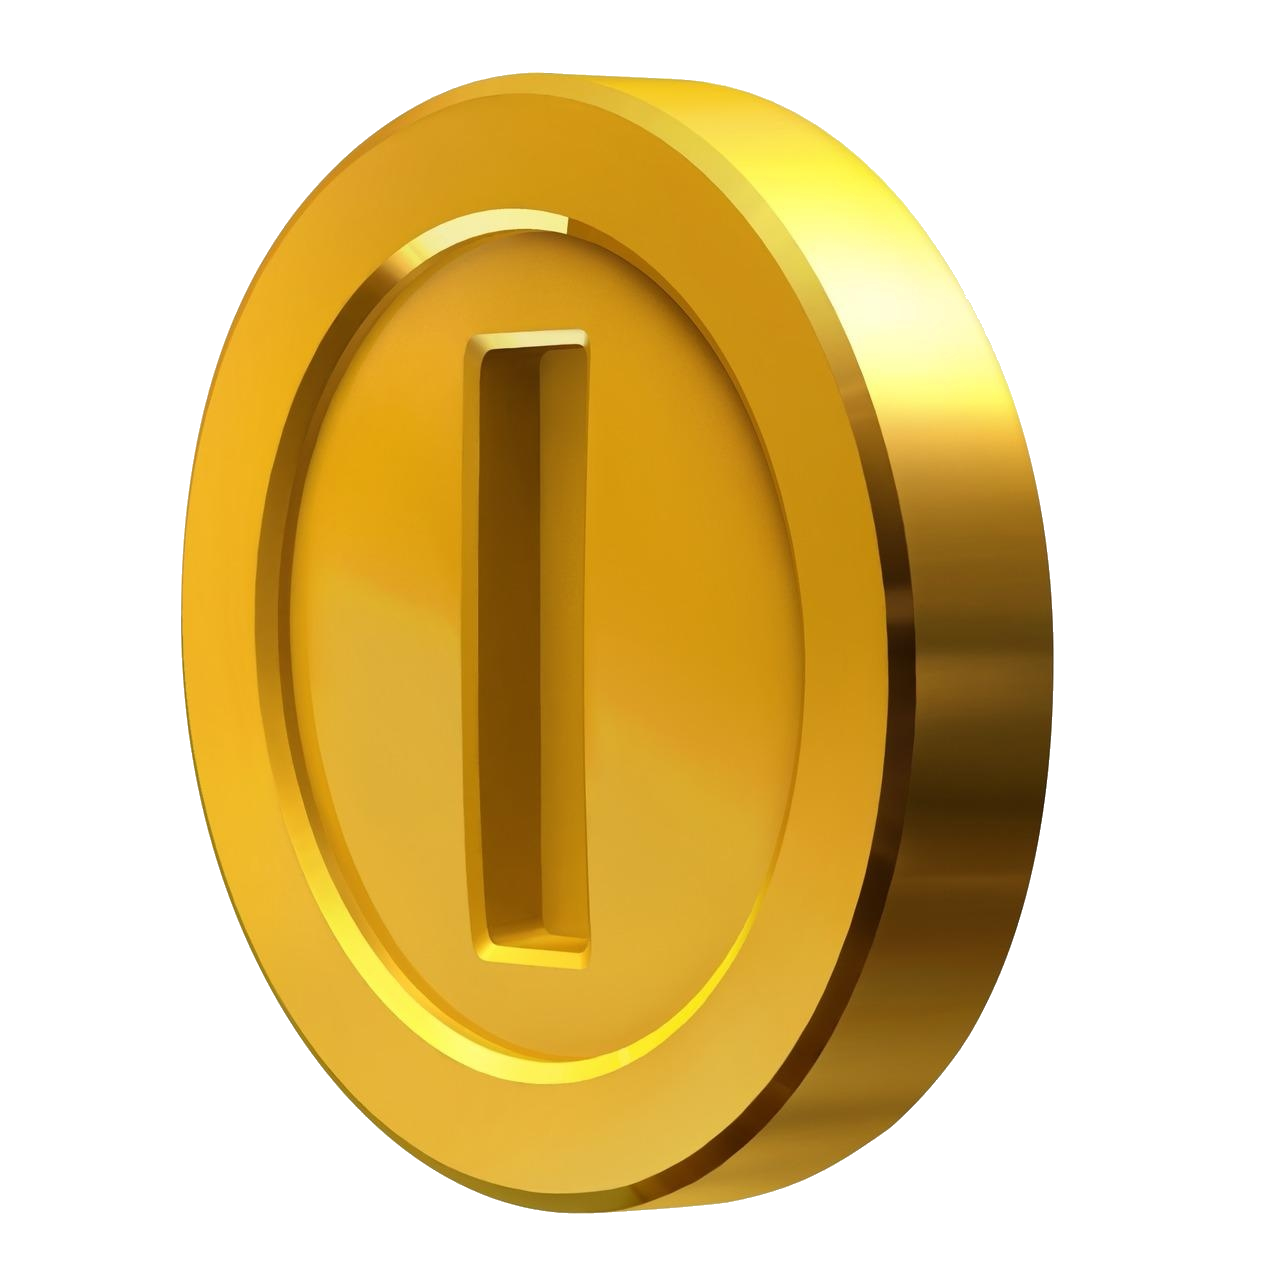 Gold clipart pure gold. Coins png image purepng